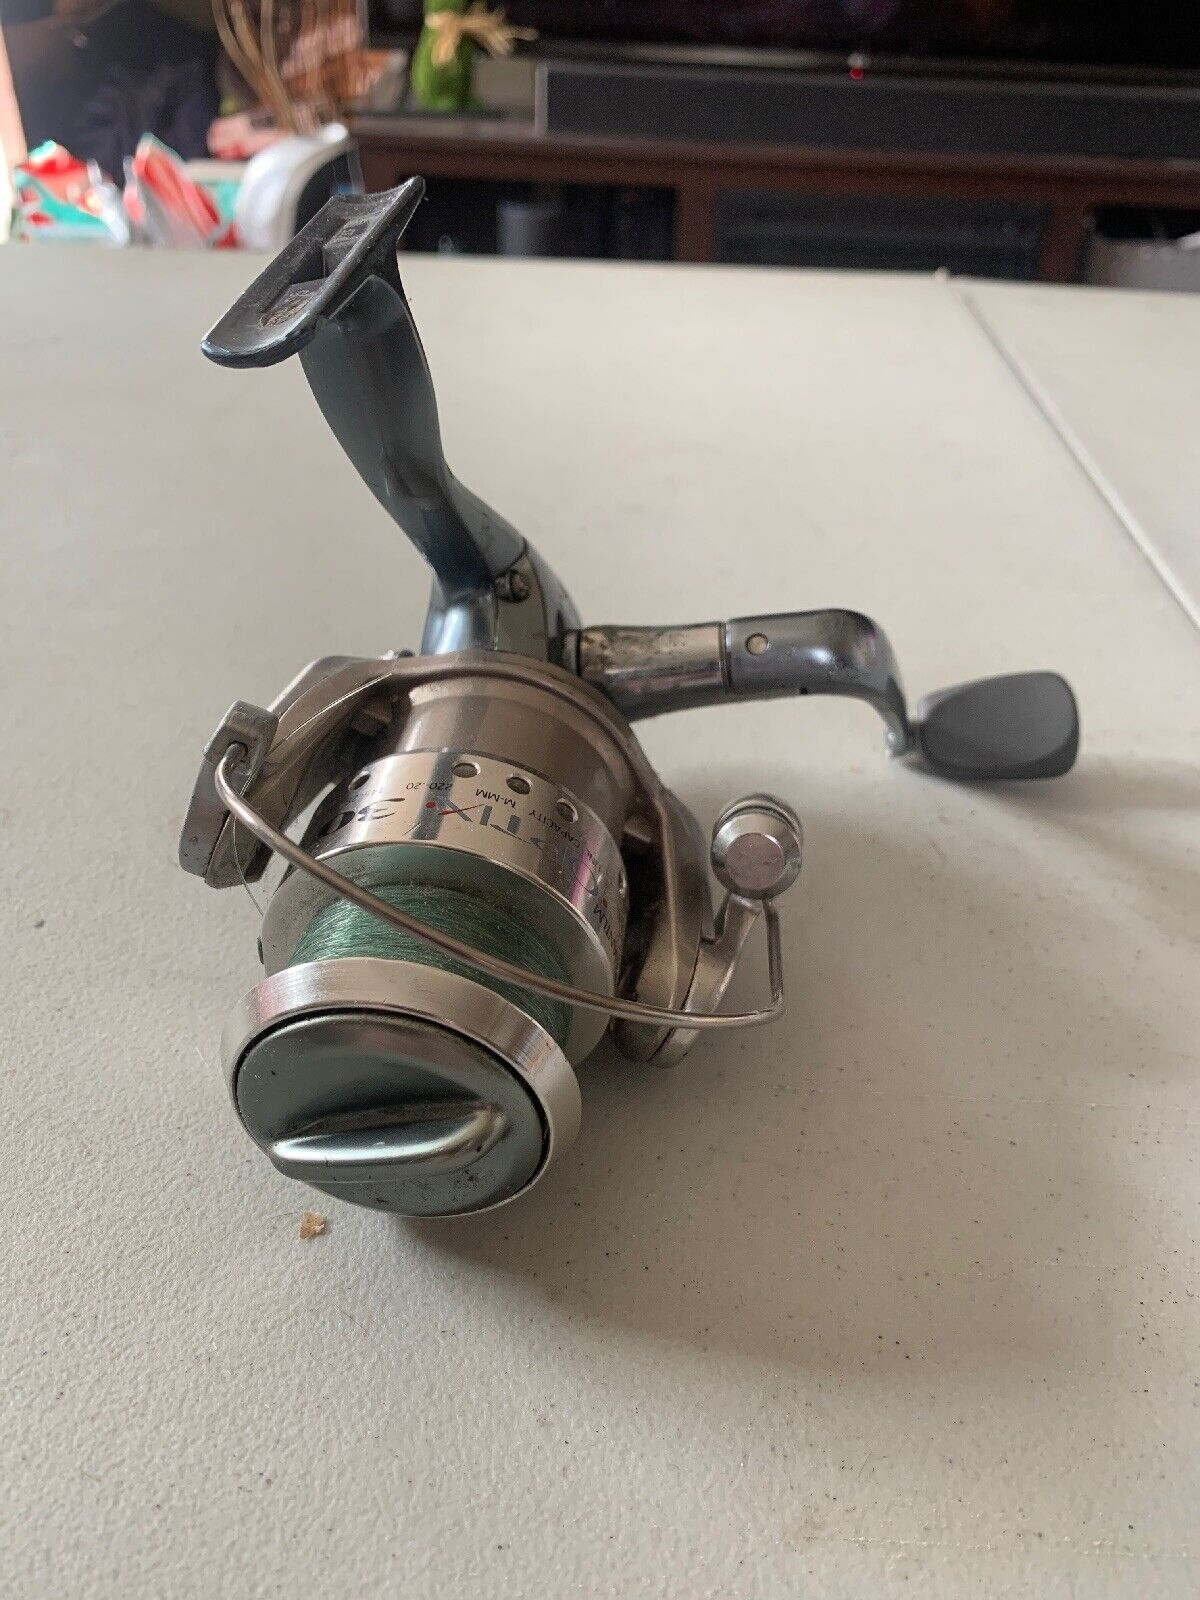 3 + Clutch Quantum Optix Spinning Fishing Reel Continuous Anti-Reverse with Smooth 4 Bearings Precisely-Aligned Gears Size 20